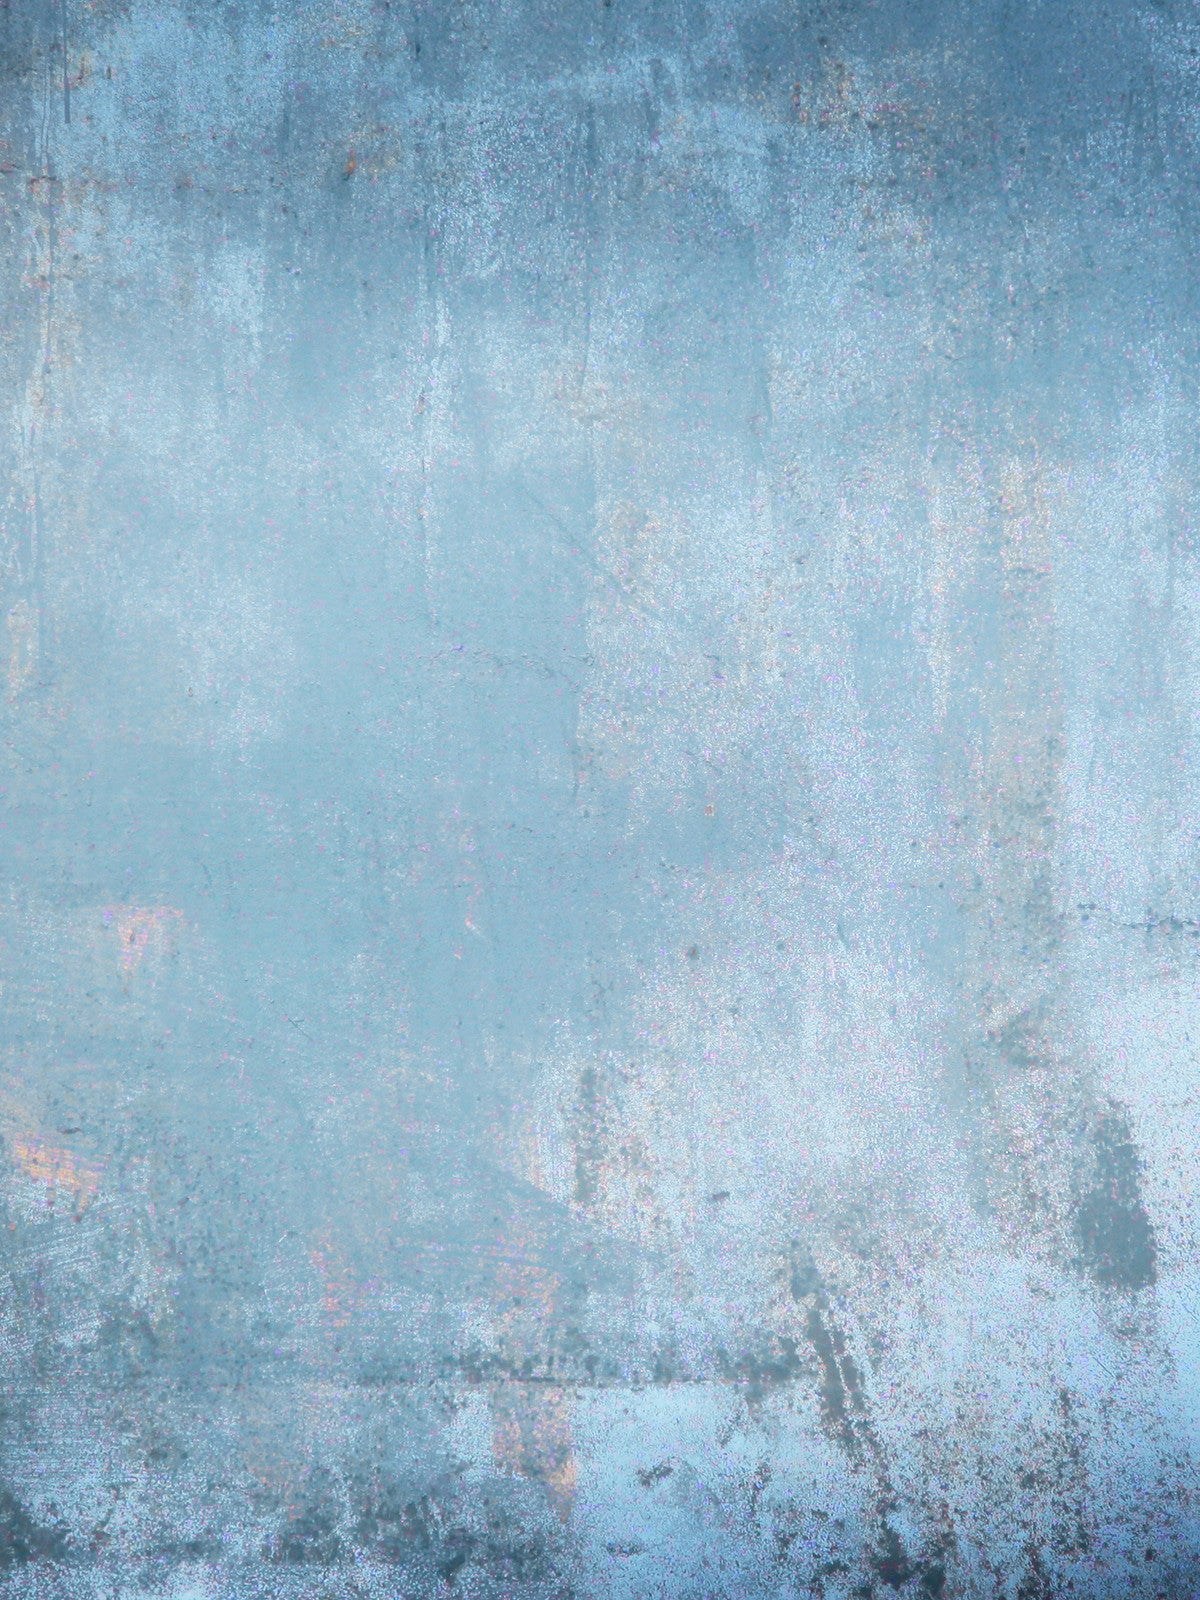 Icy Blue Photography Backdrop / 7145